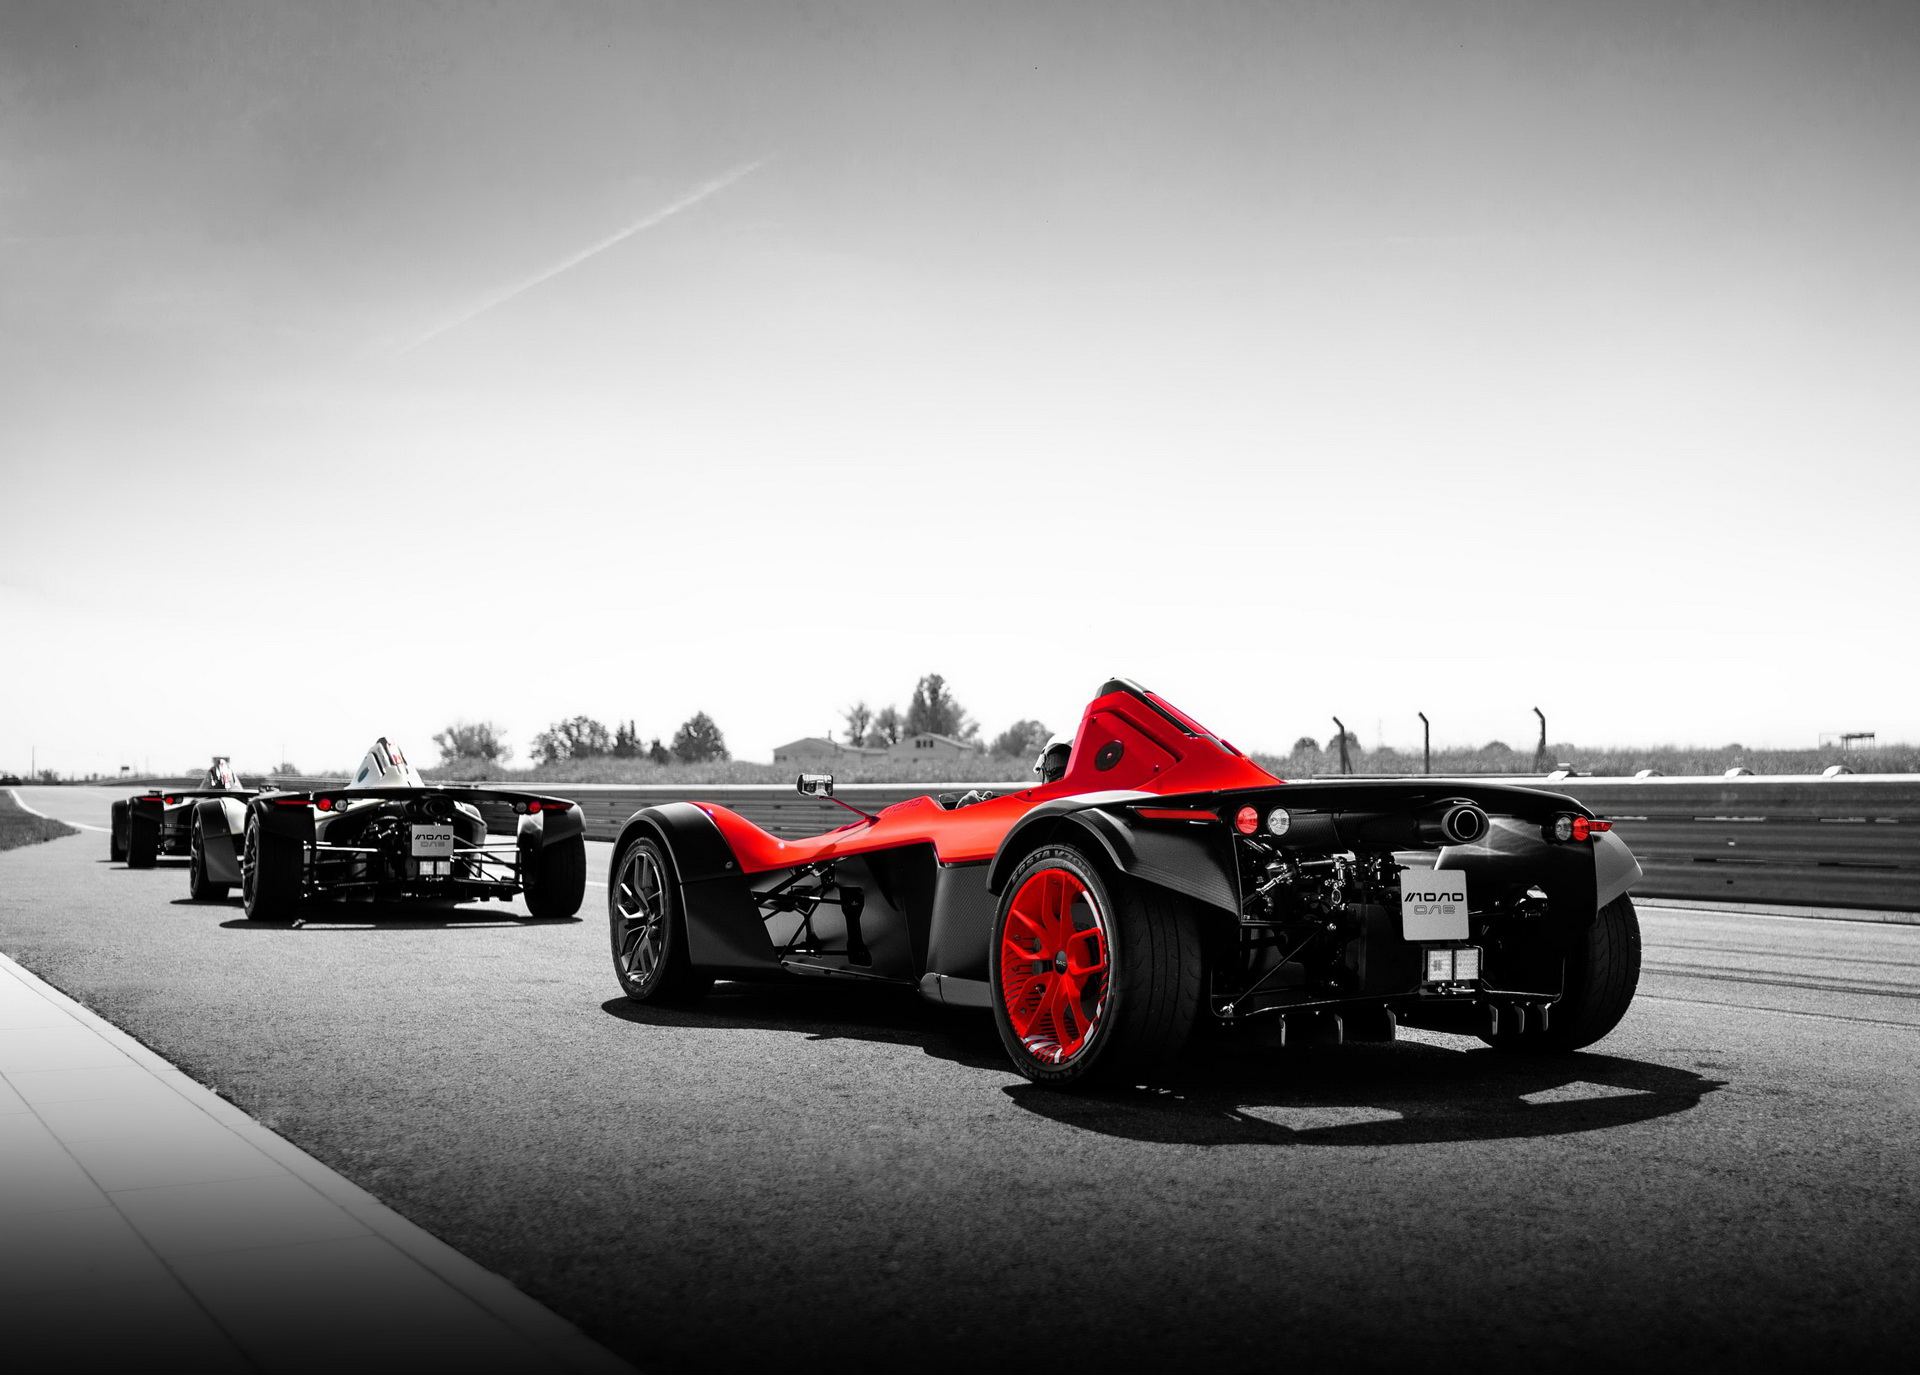 2020-bac-mono-one-final-edition-5